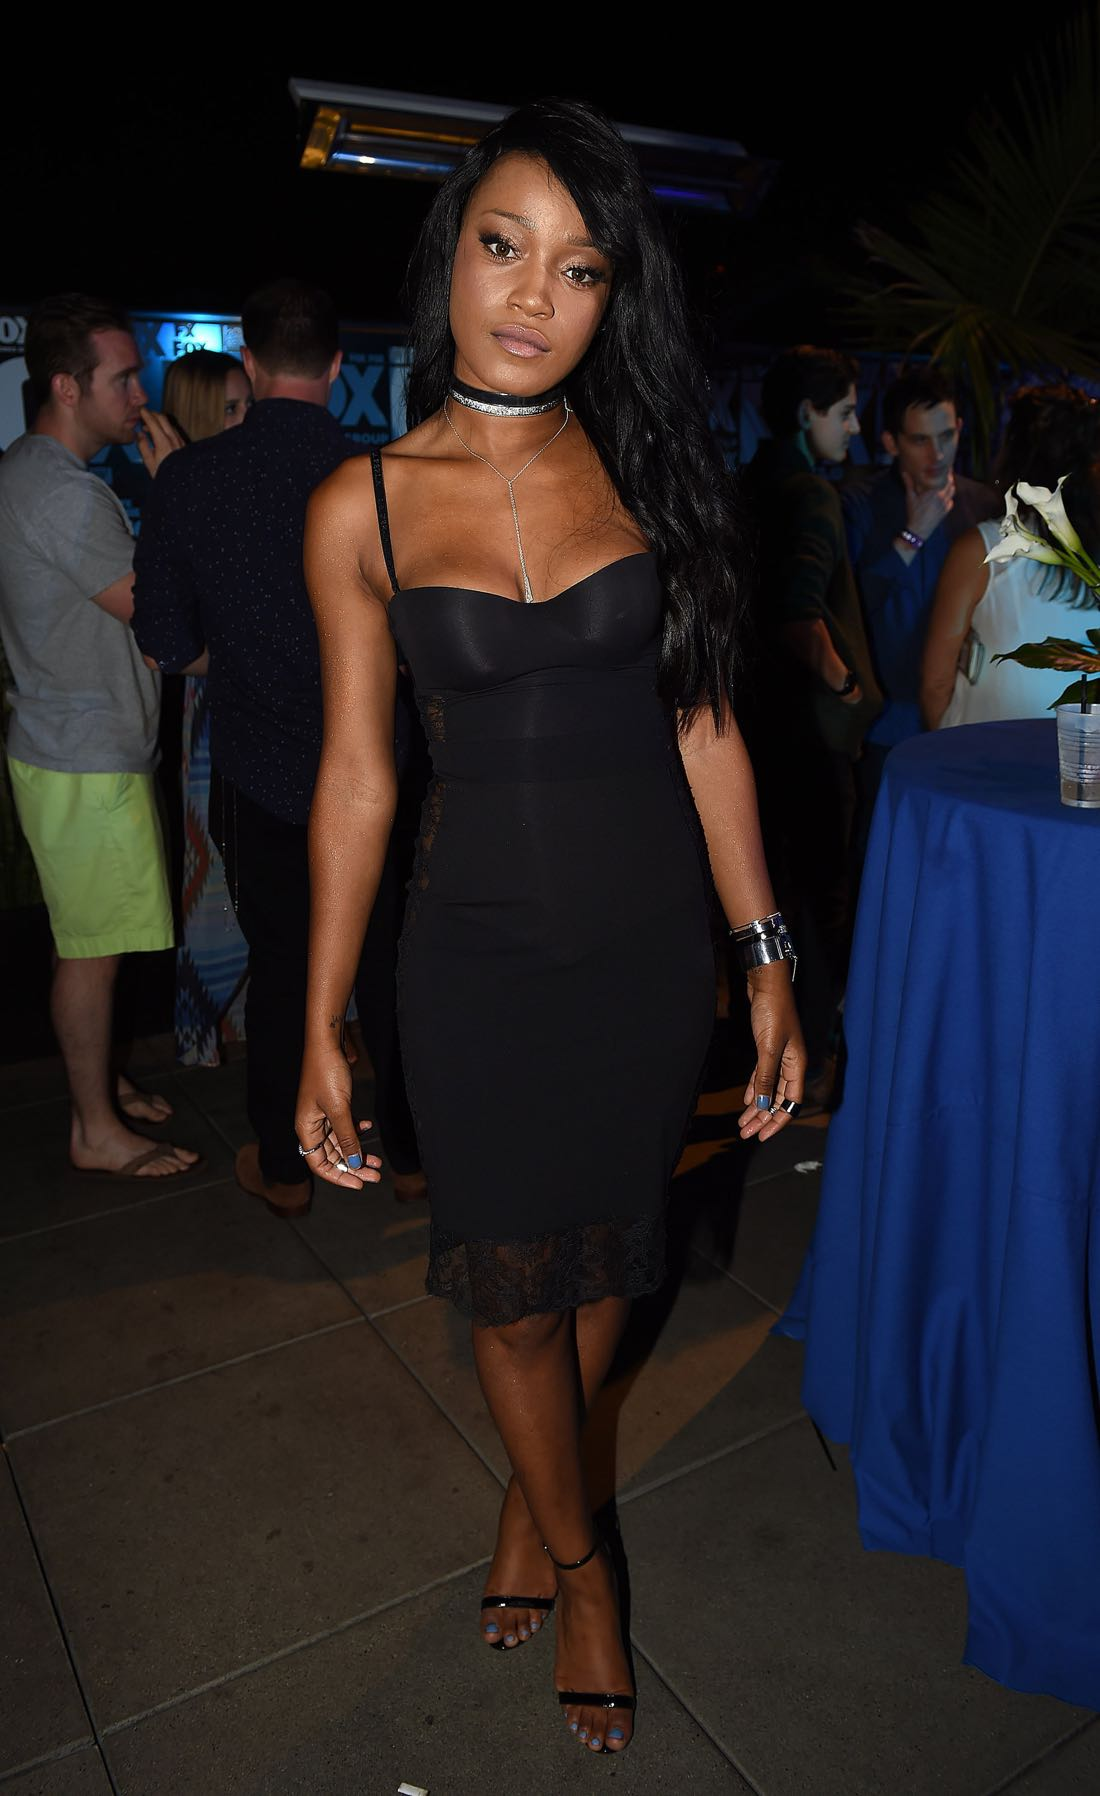 FOX FANFARE ALL-STAR COMIC CON PARTY AT SAN DIEGO COMIC-CON © 2016: Keke Palmer attend the FOX FANFARE ALL-STAR COMIC CON PARTY AT SAN DIEGO COMIC-CON © 2016 on Friday, July 22 at the Andaz Hotel in San Diego, CA. CR: Frank Micelotta/FOX © 2016 FOX BROADCASTING